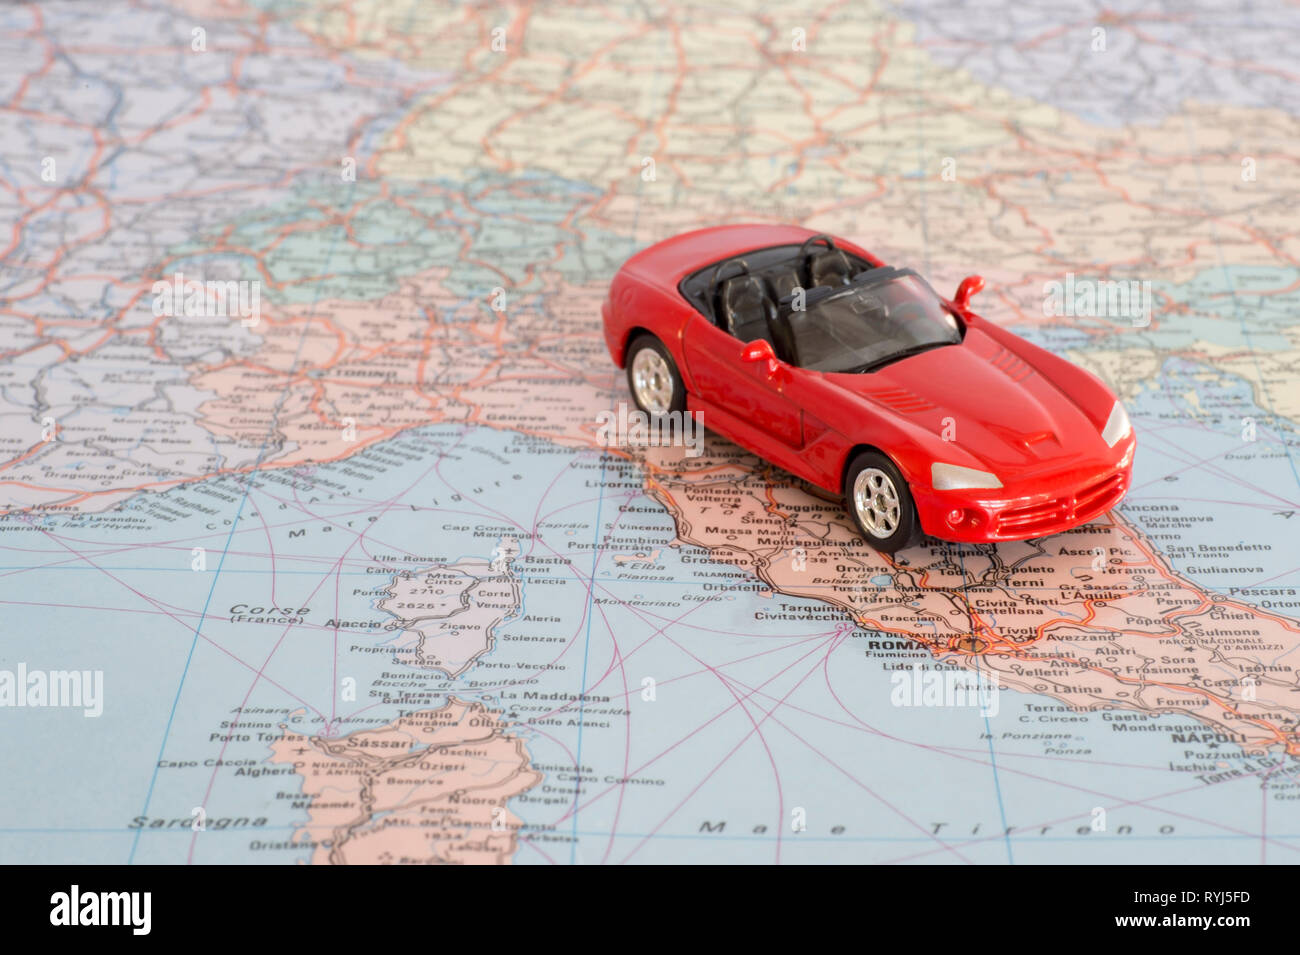 Toy red car on the geographical map of Europe. Travel route planning concept. Stock Photo